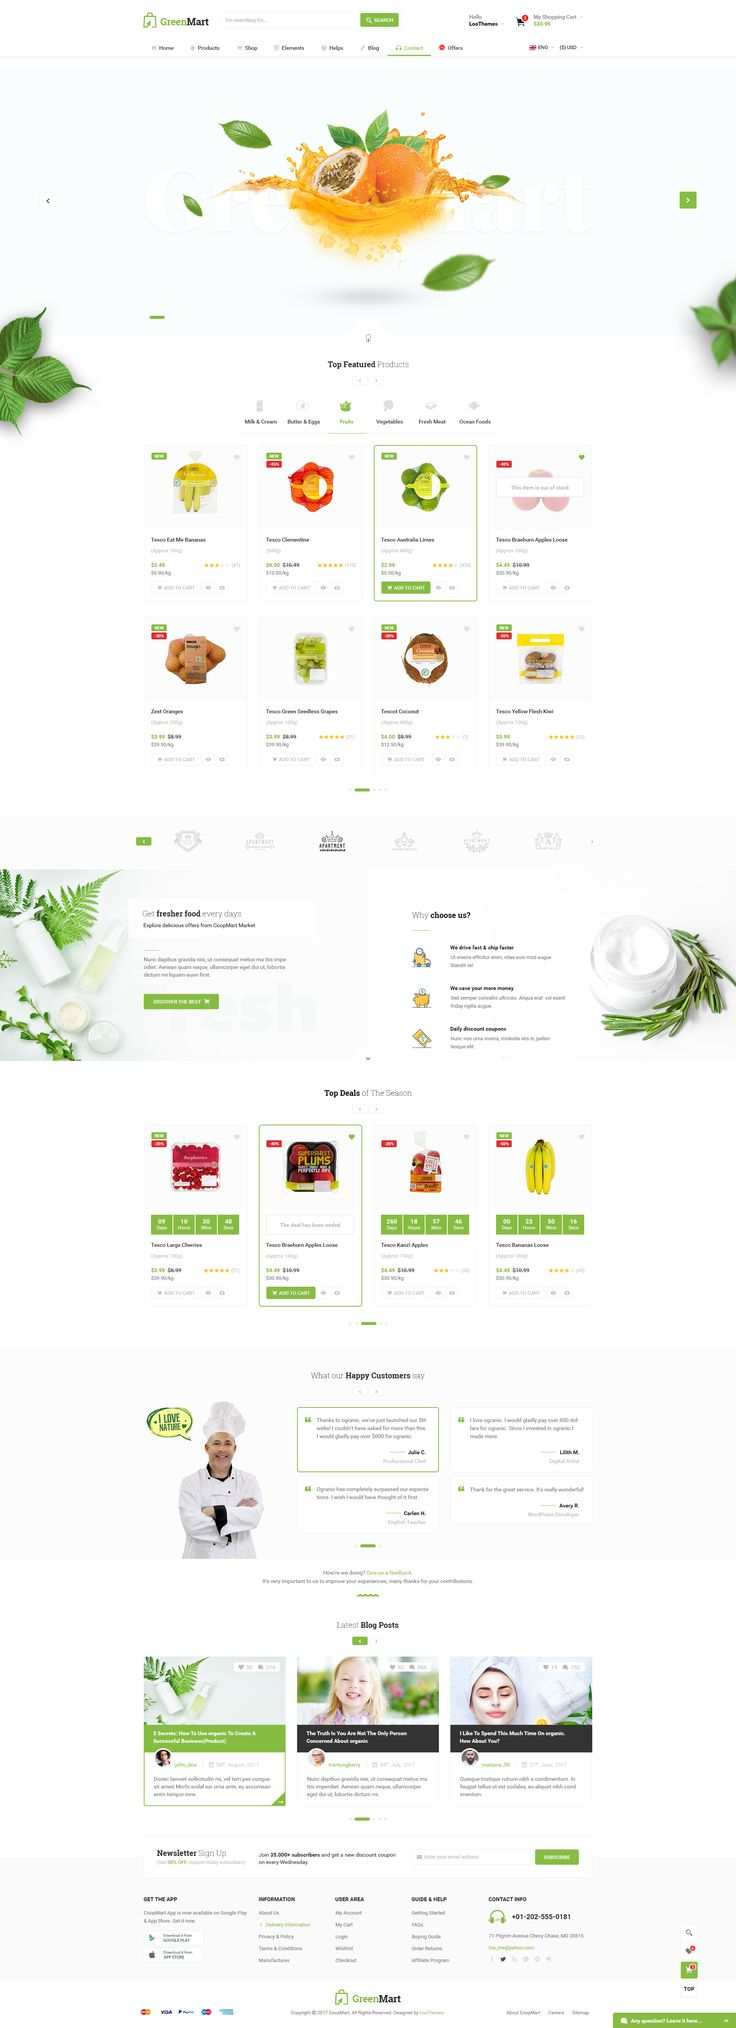 GreenMart - Food & Organic Supermarket PSD Template #green #market #organic • Download ➝ https://themeforest.net/item/greenmart-food-organic-supermarket-psd-template/20486167?ref=pxcr